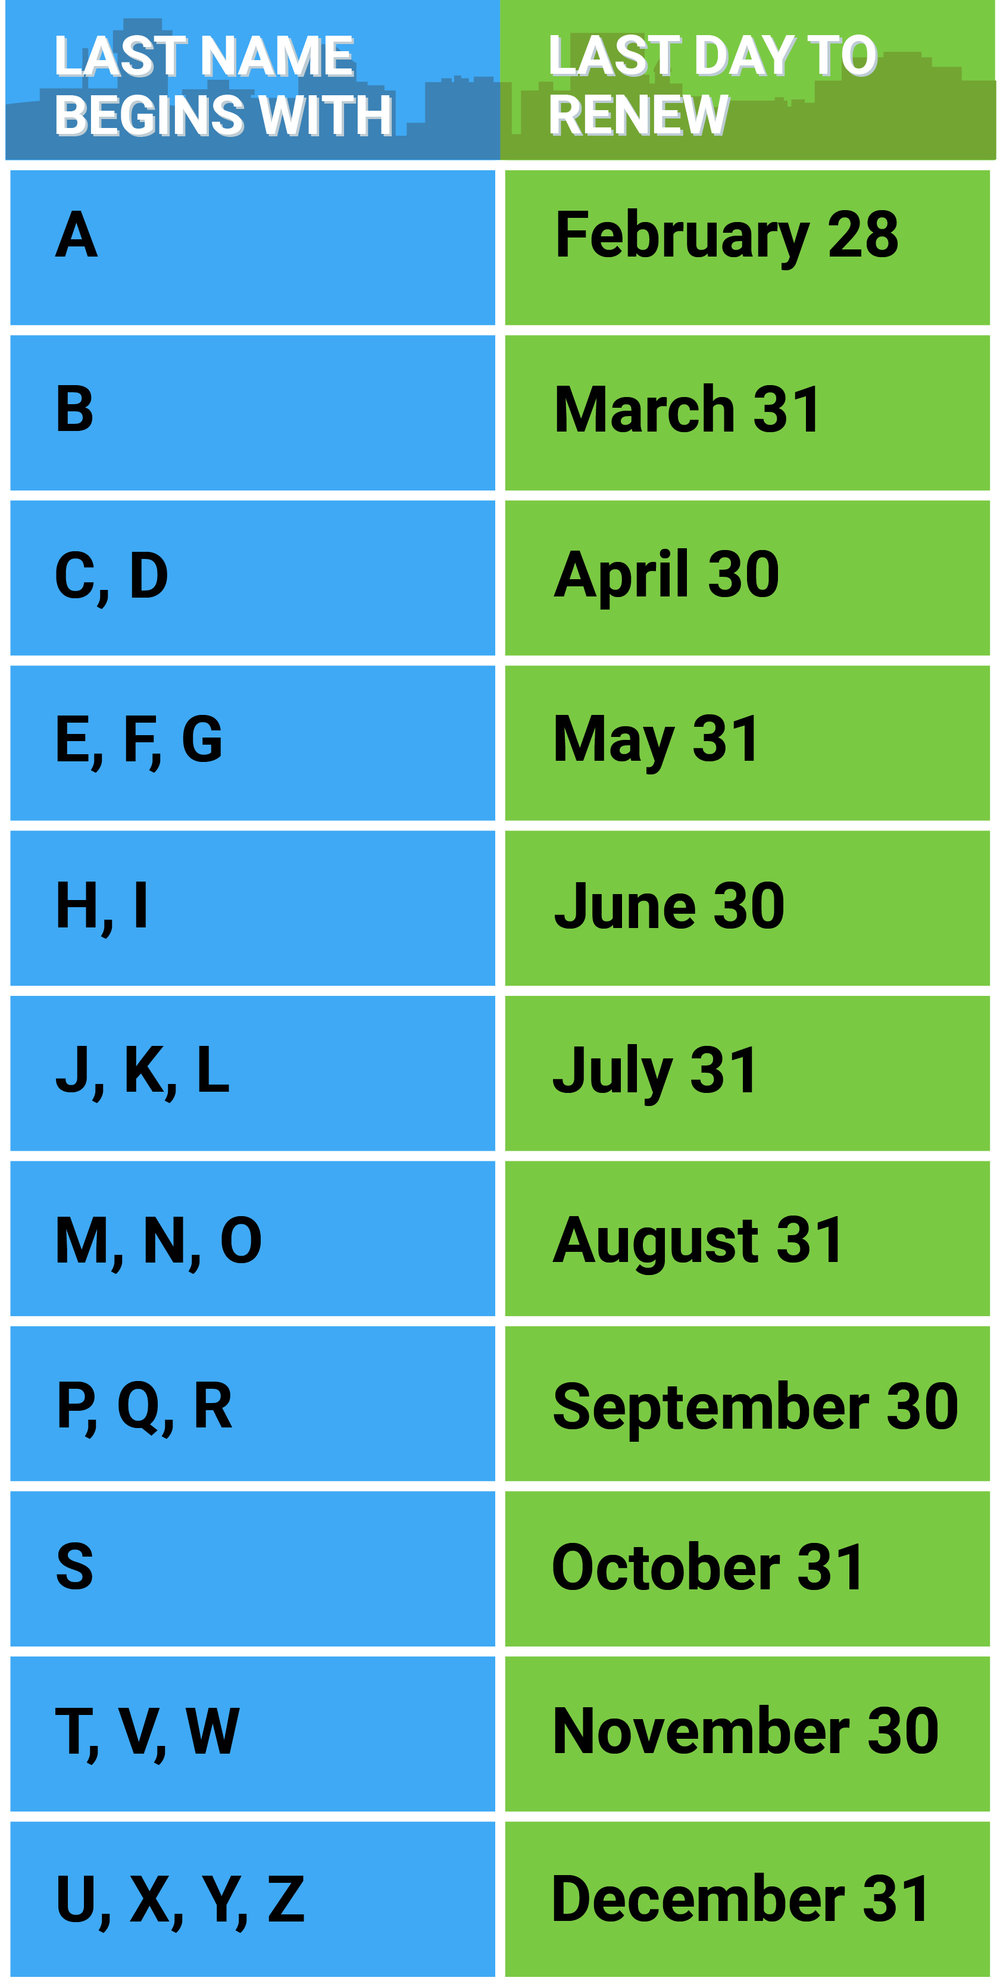 Tag Renewal Schedule.jpg